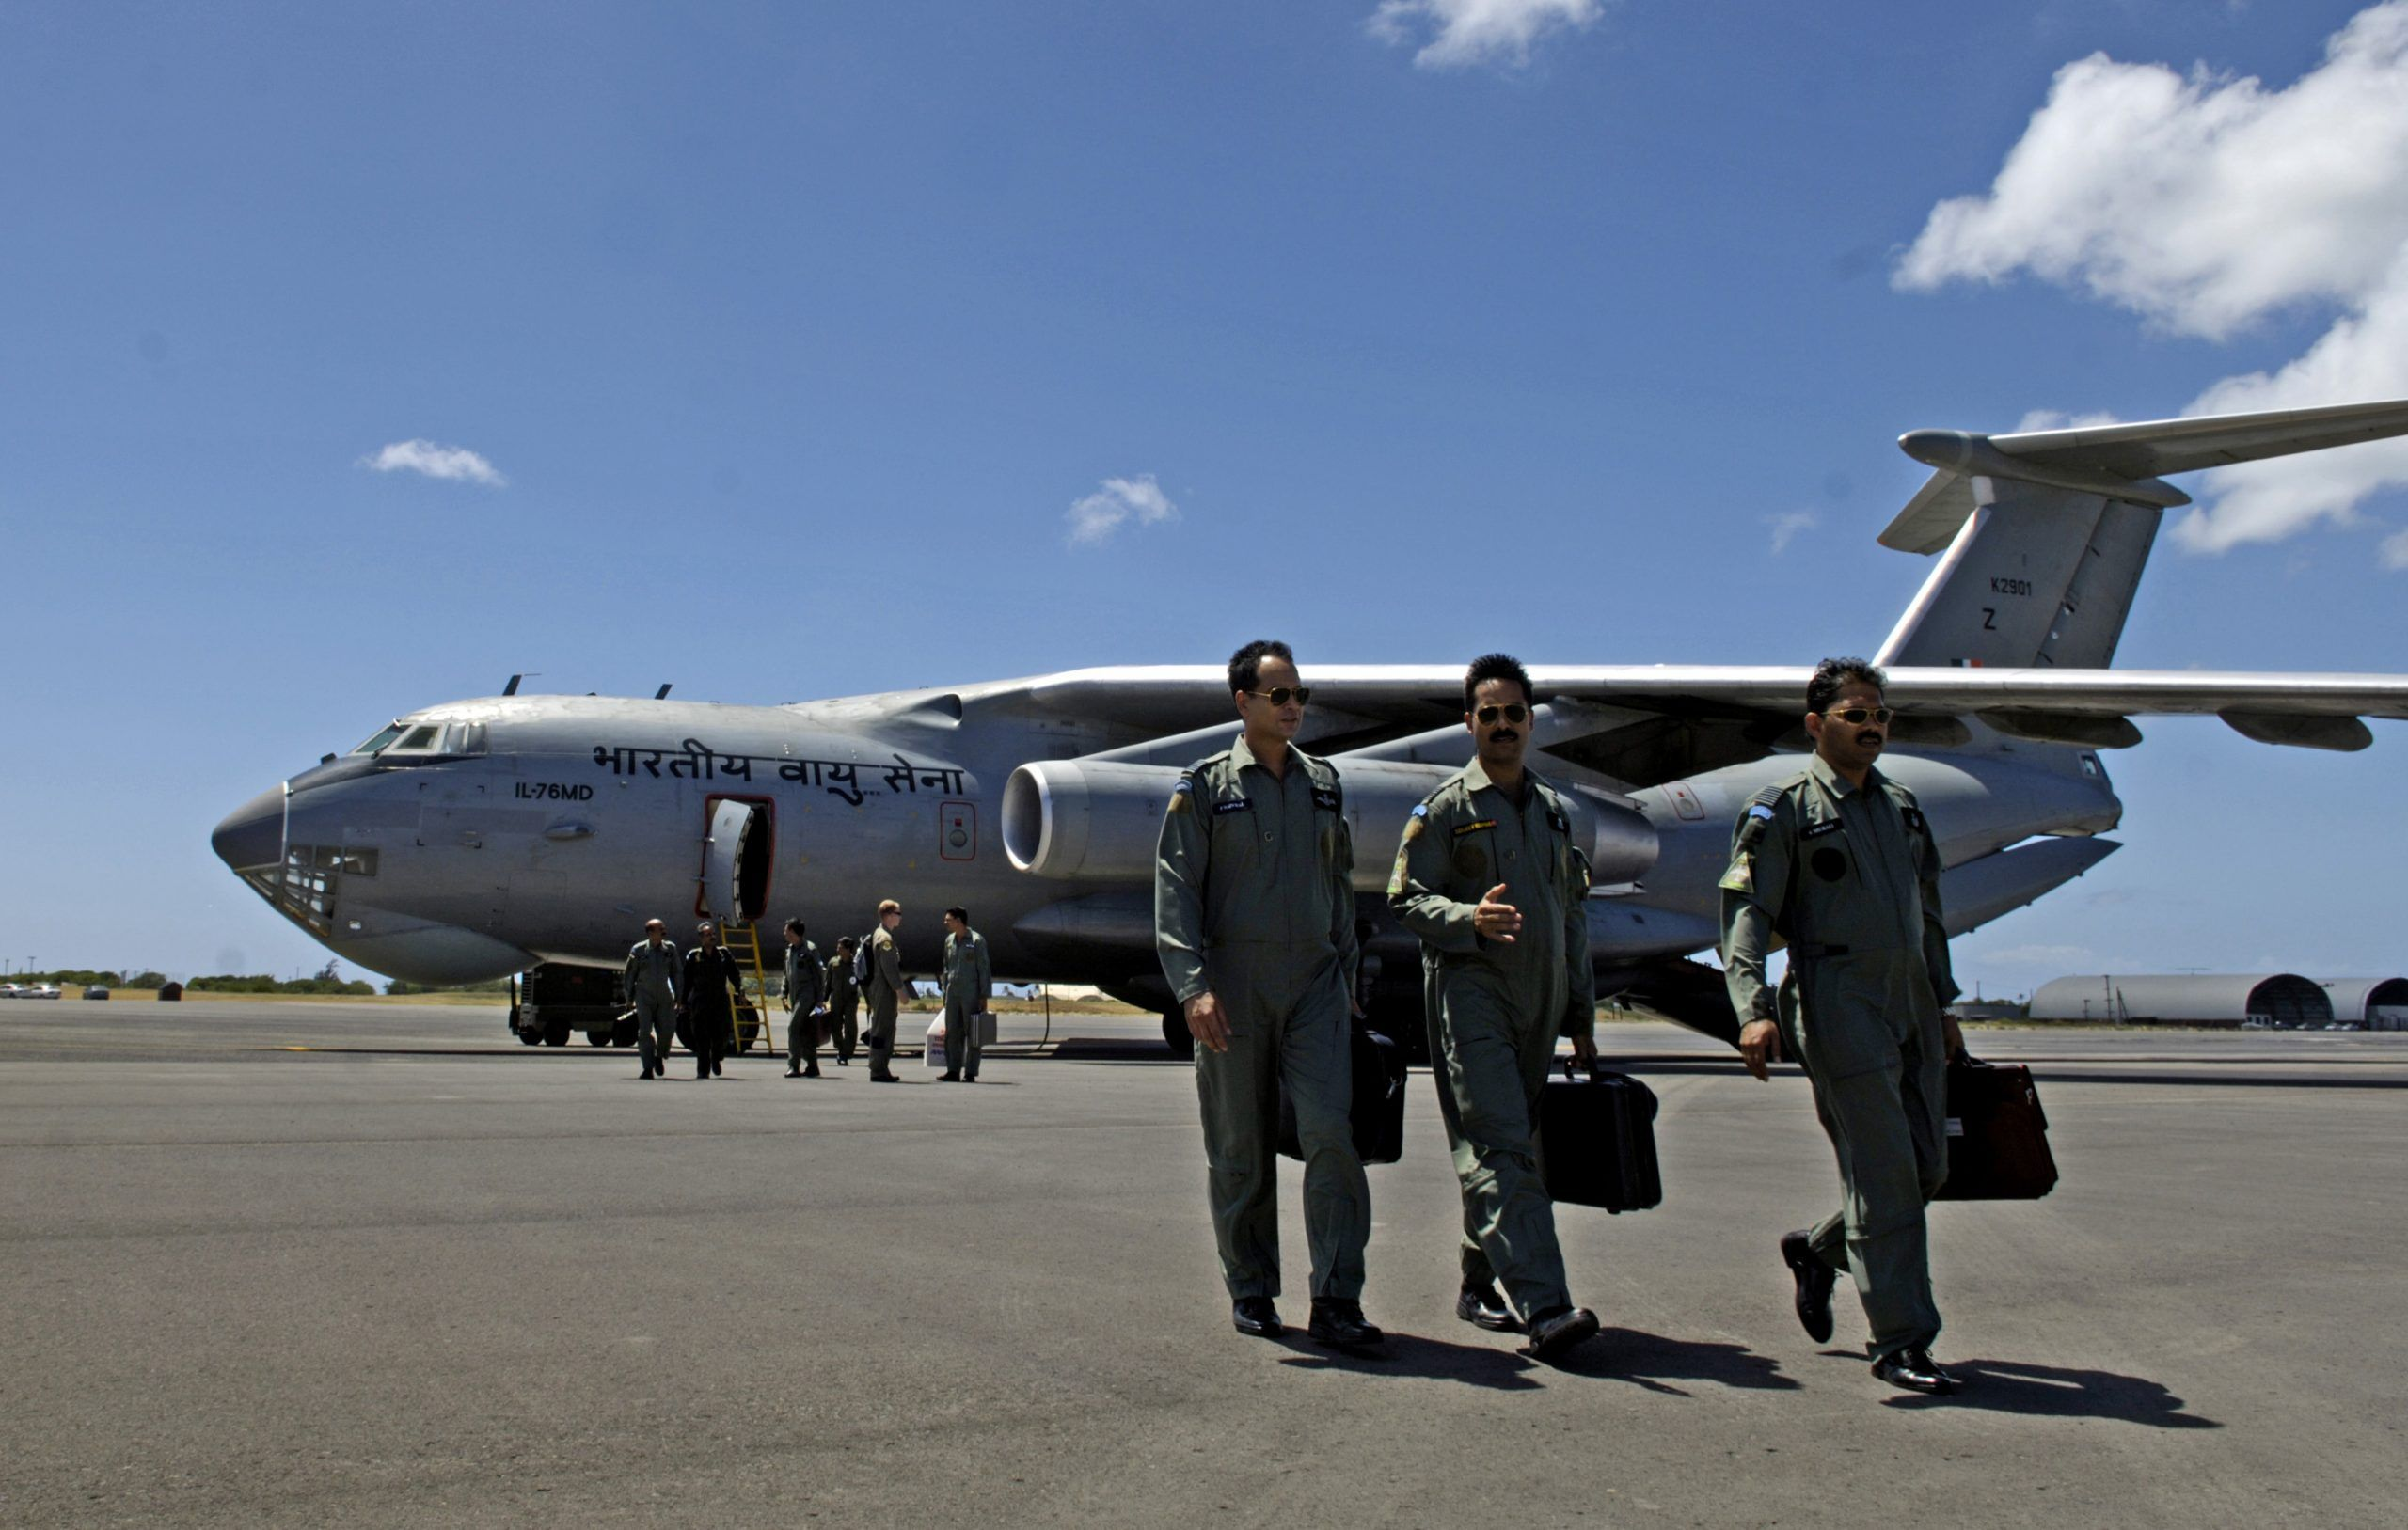 Airmen fly with Indian air force counterparts